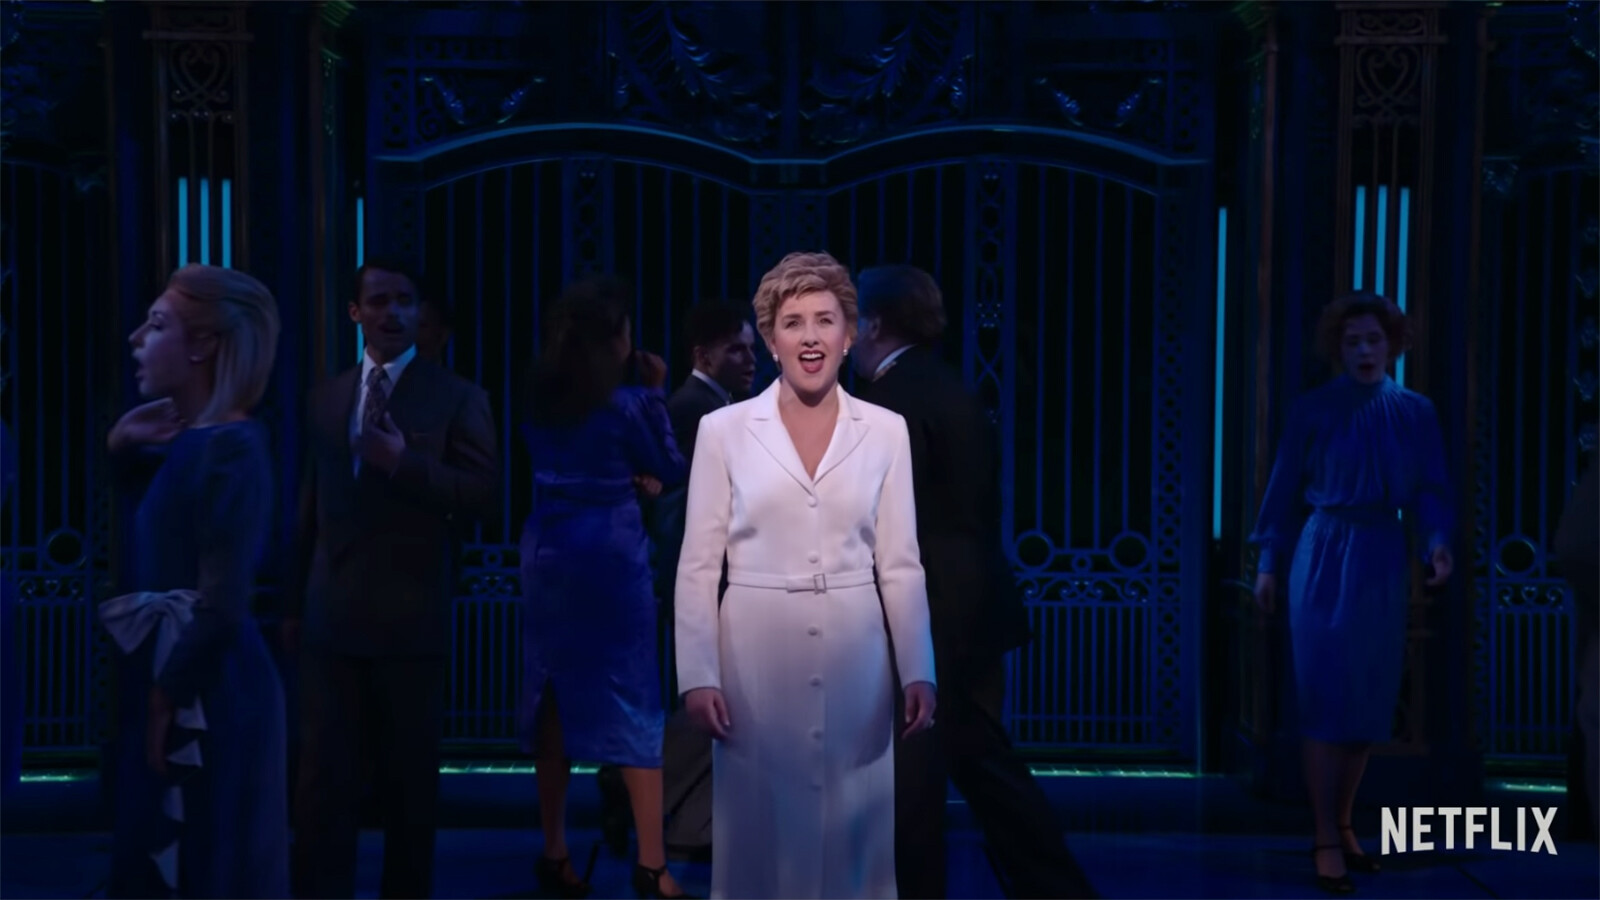 'Diana: The Musical' brings the stage to Netflix, but 'The Crown' hangs over its head